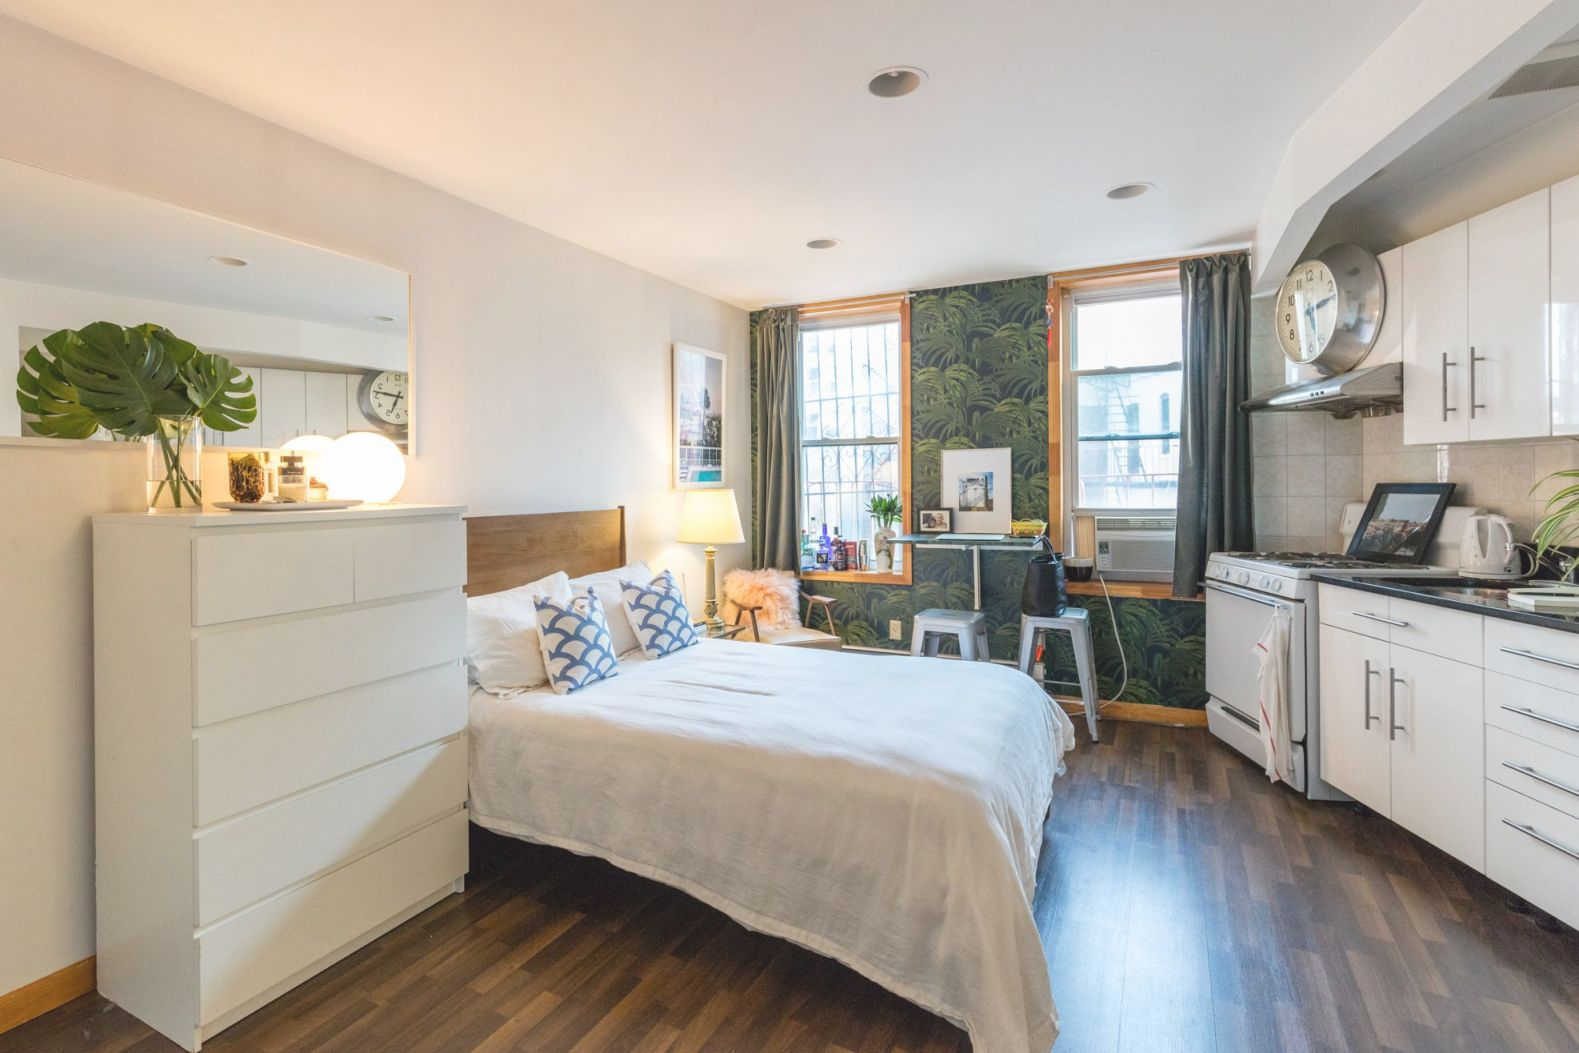 12 Perfect Studio Apartment Layouts That Work pertaining to One Bedroom Apartment Decorating Ideas